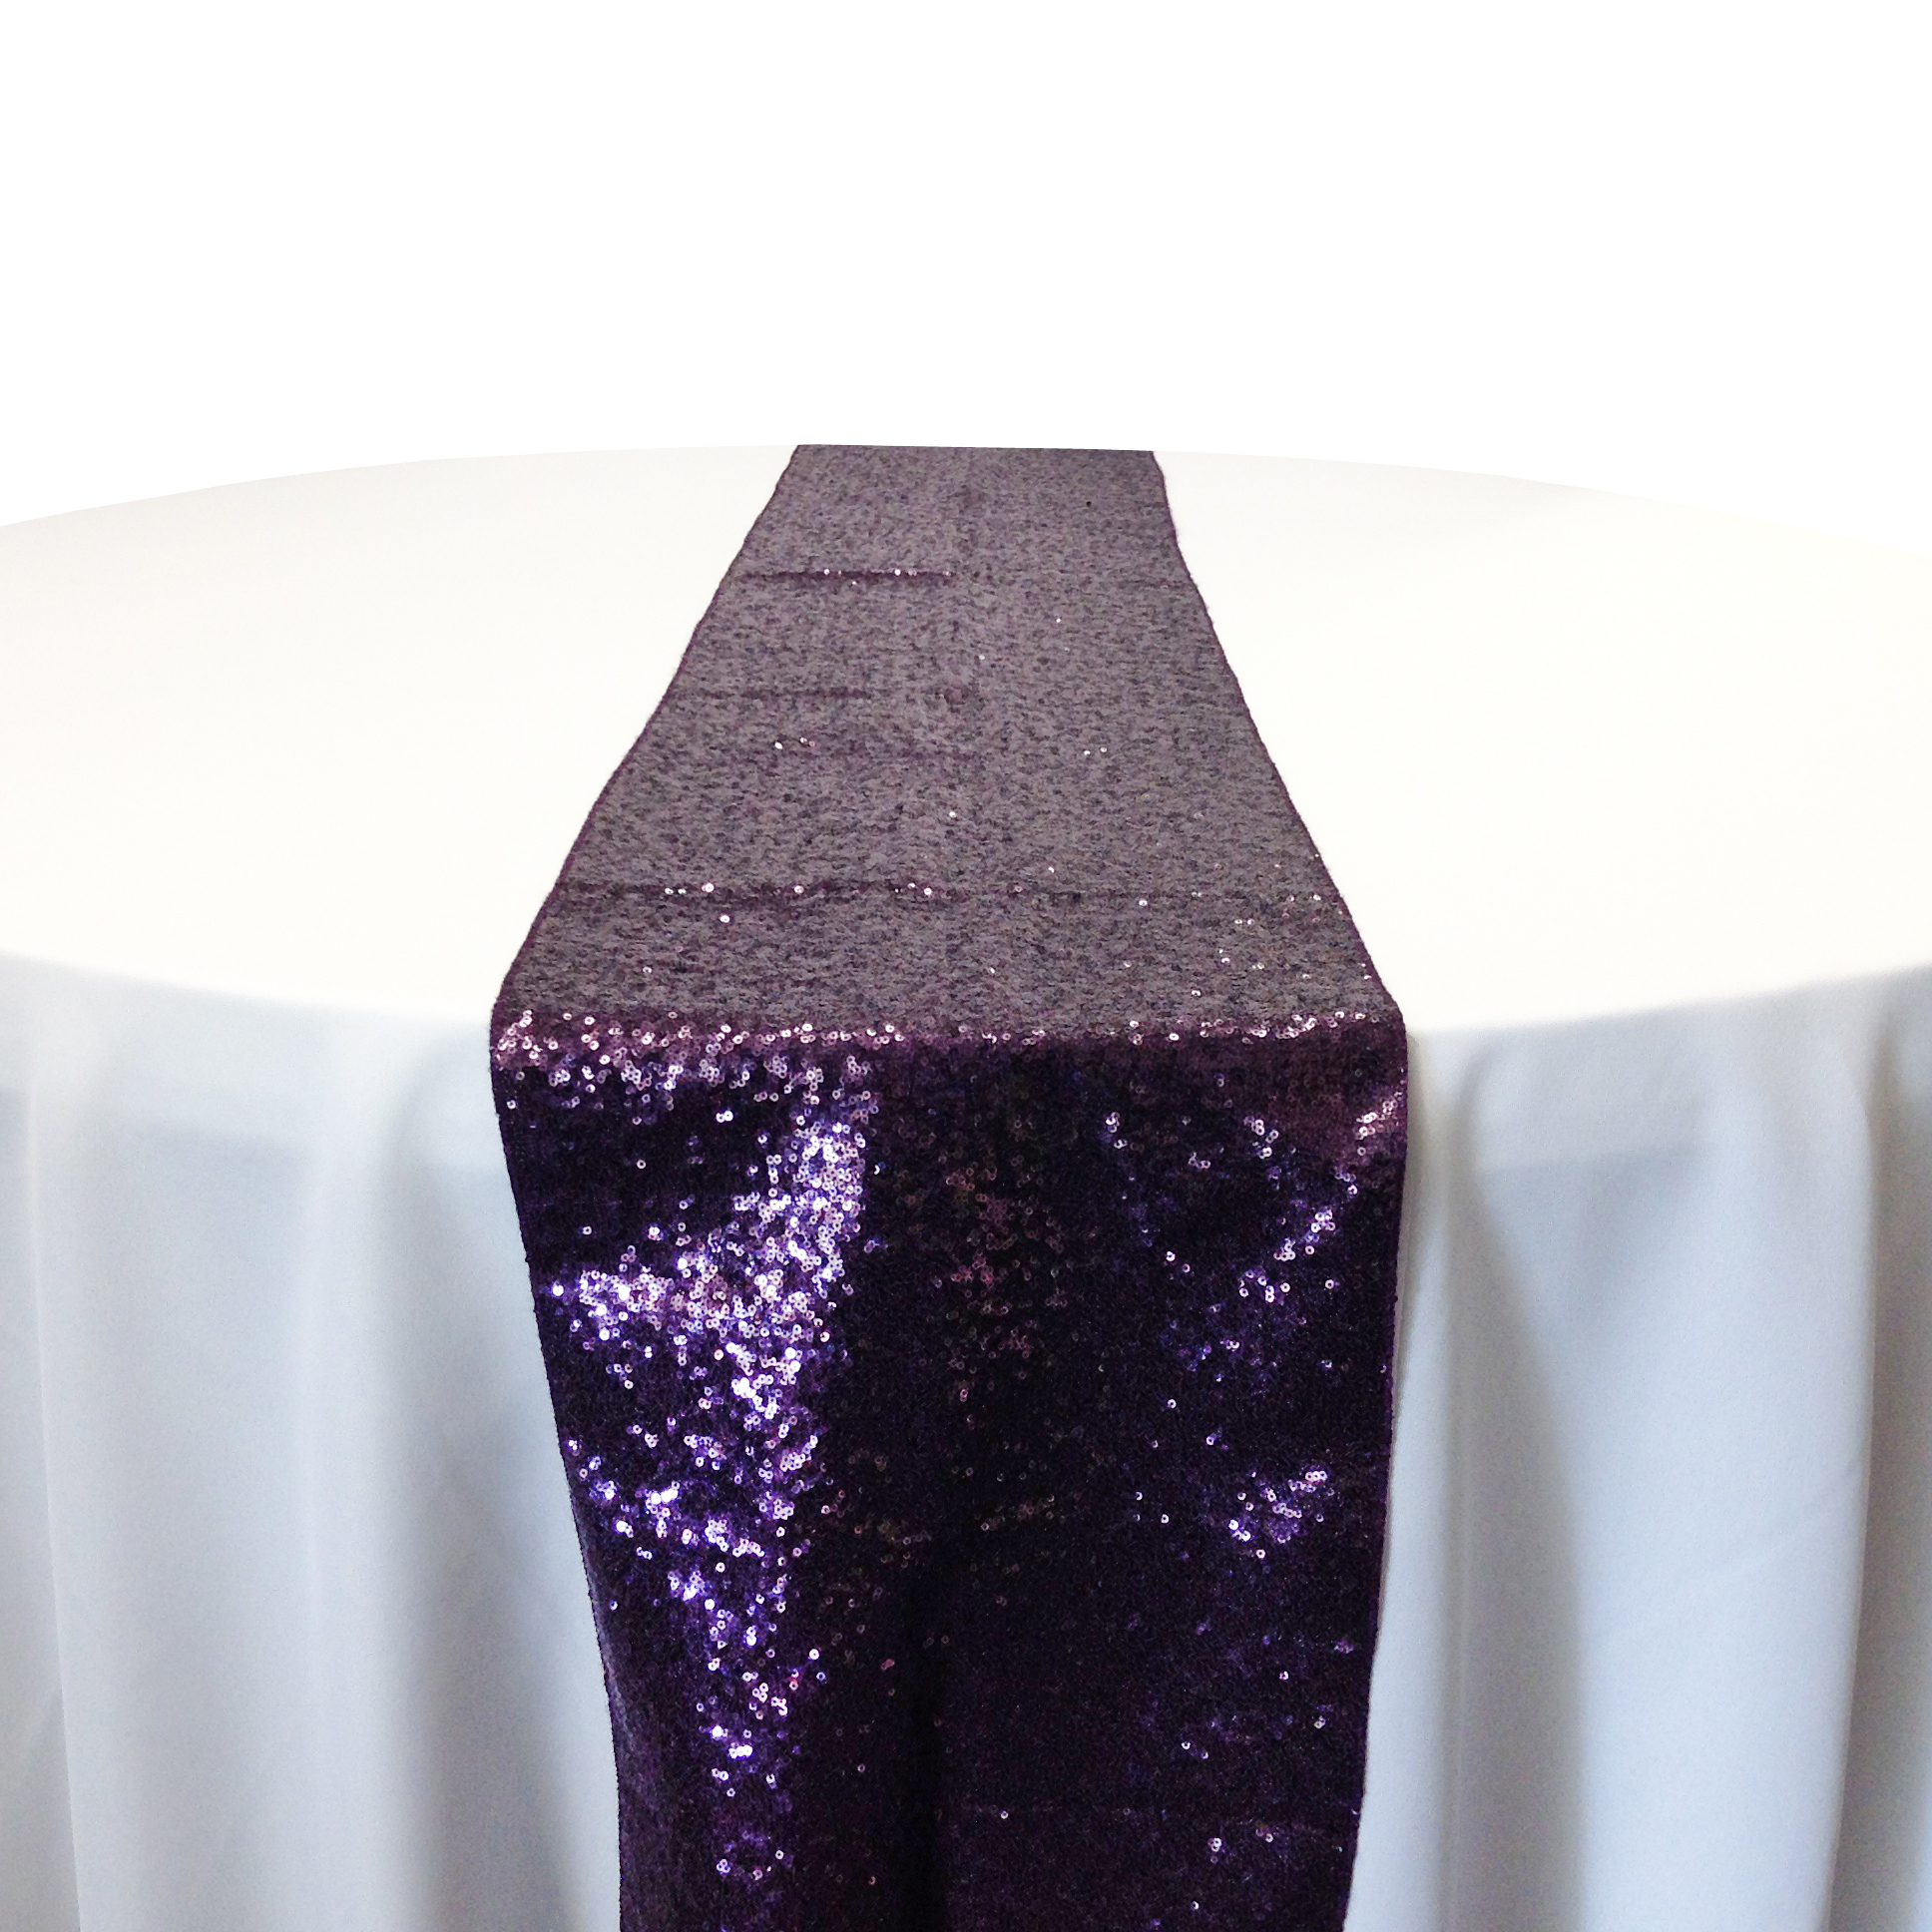 Plum Taffeta Sequin Table Runner Rental Plum Taffeta Glitz Table Runner Rental